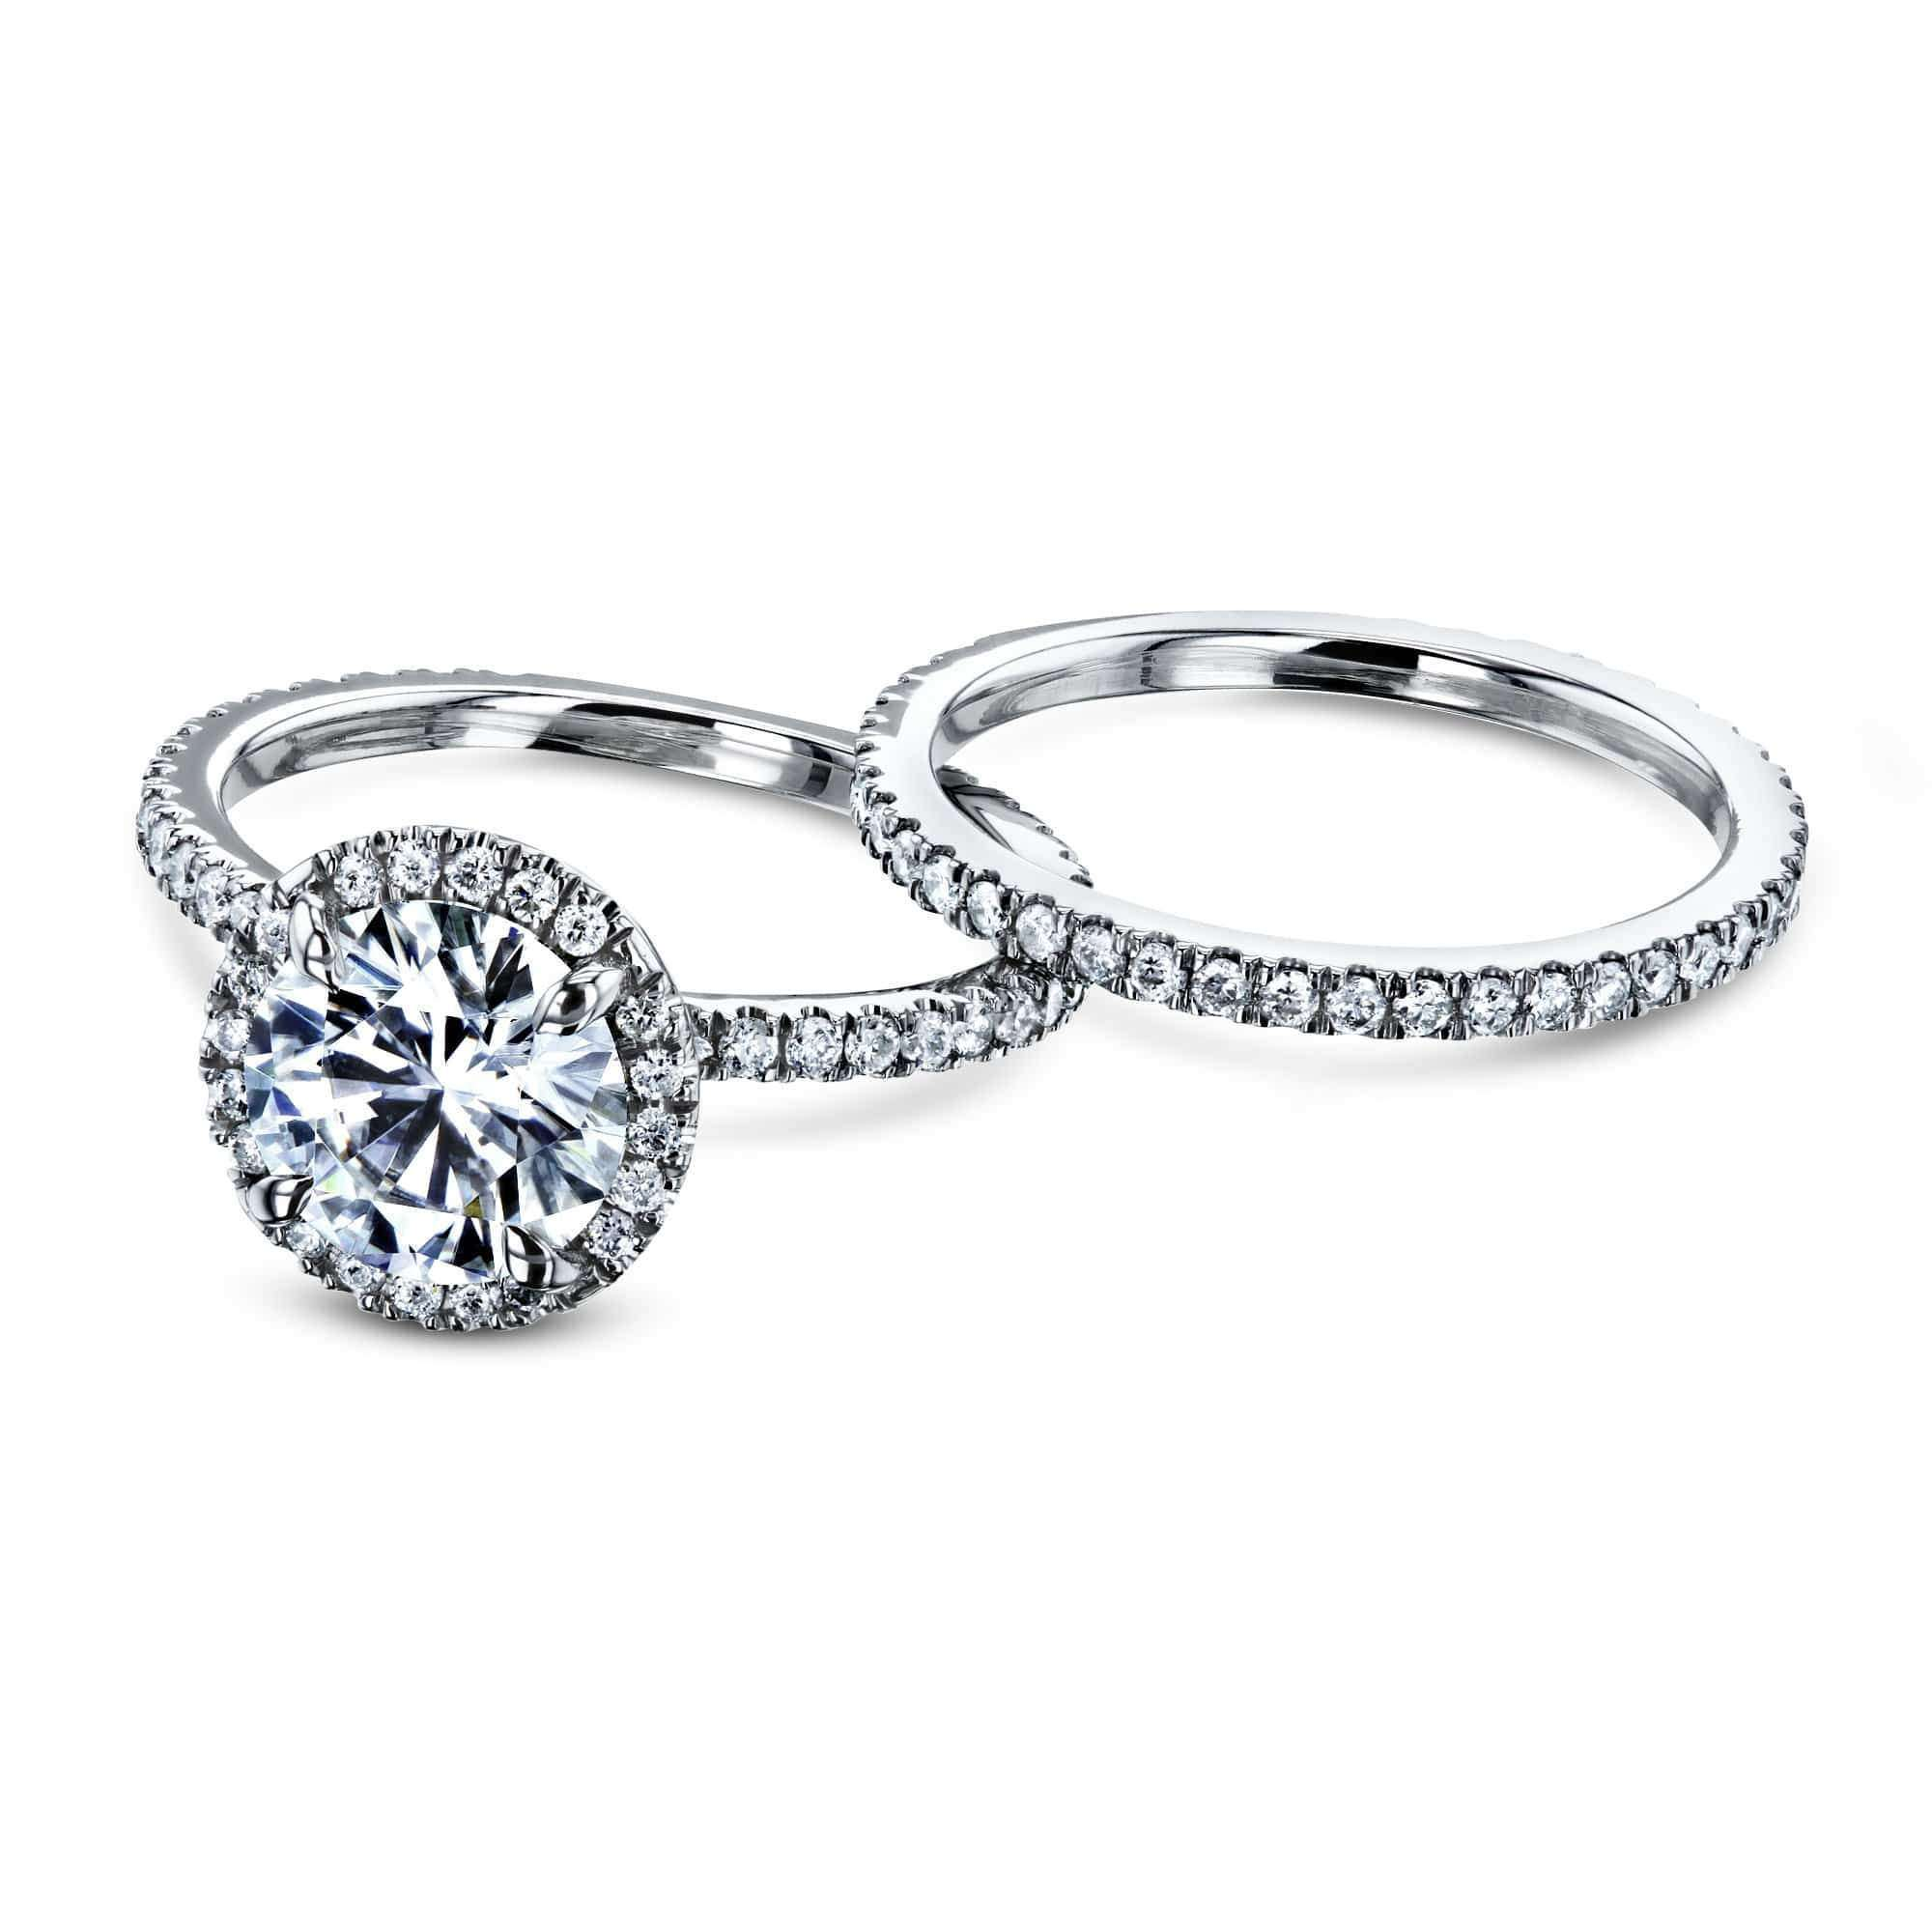 Compare Prong Accented 2 1/5 CTW Floating Halo Bridal - white-gold 9 Kobelli F-G